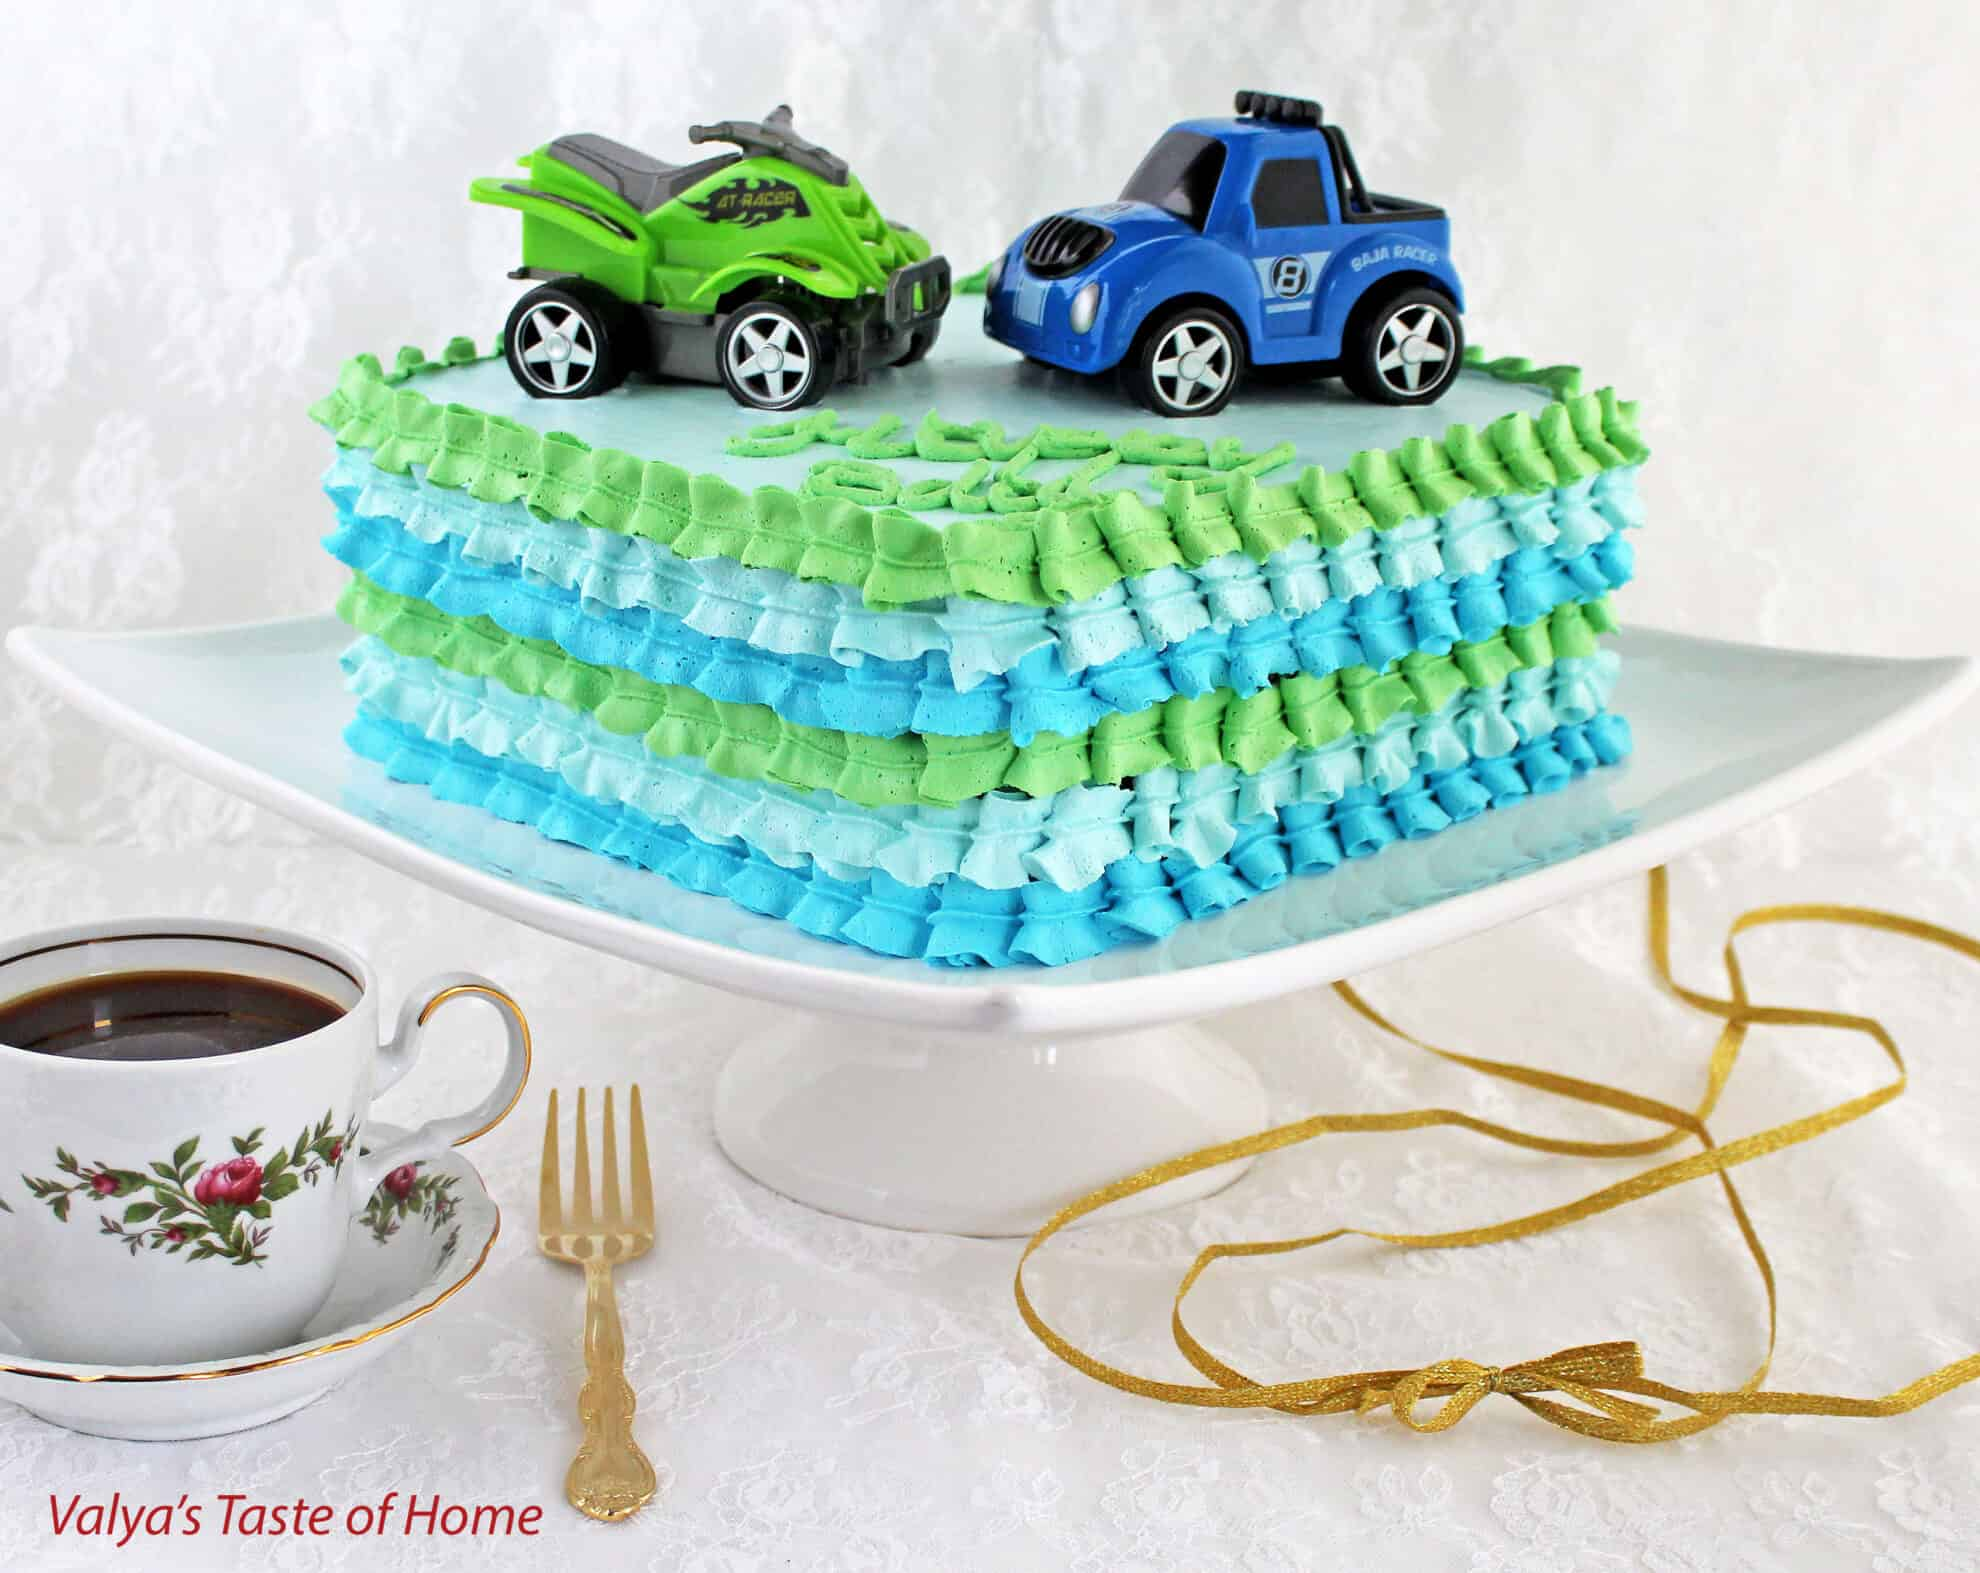 Cake Day And Night Valyas Taste Of Home